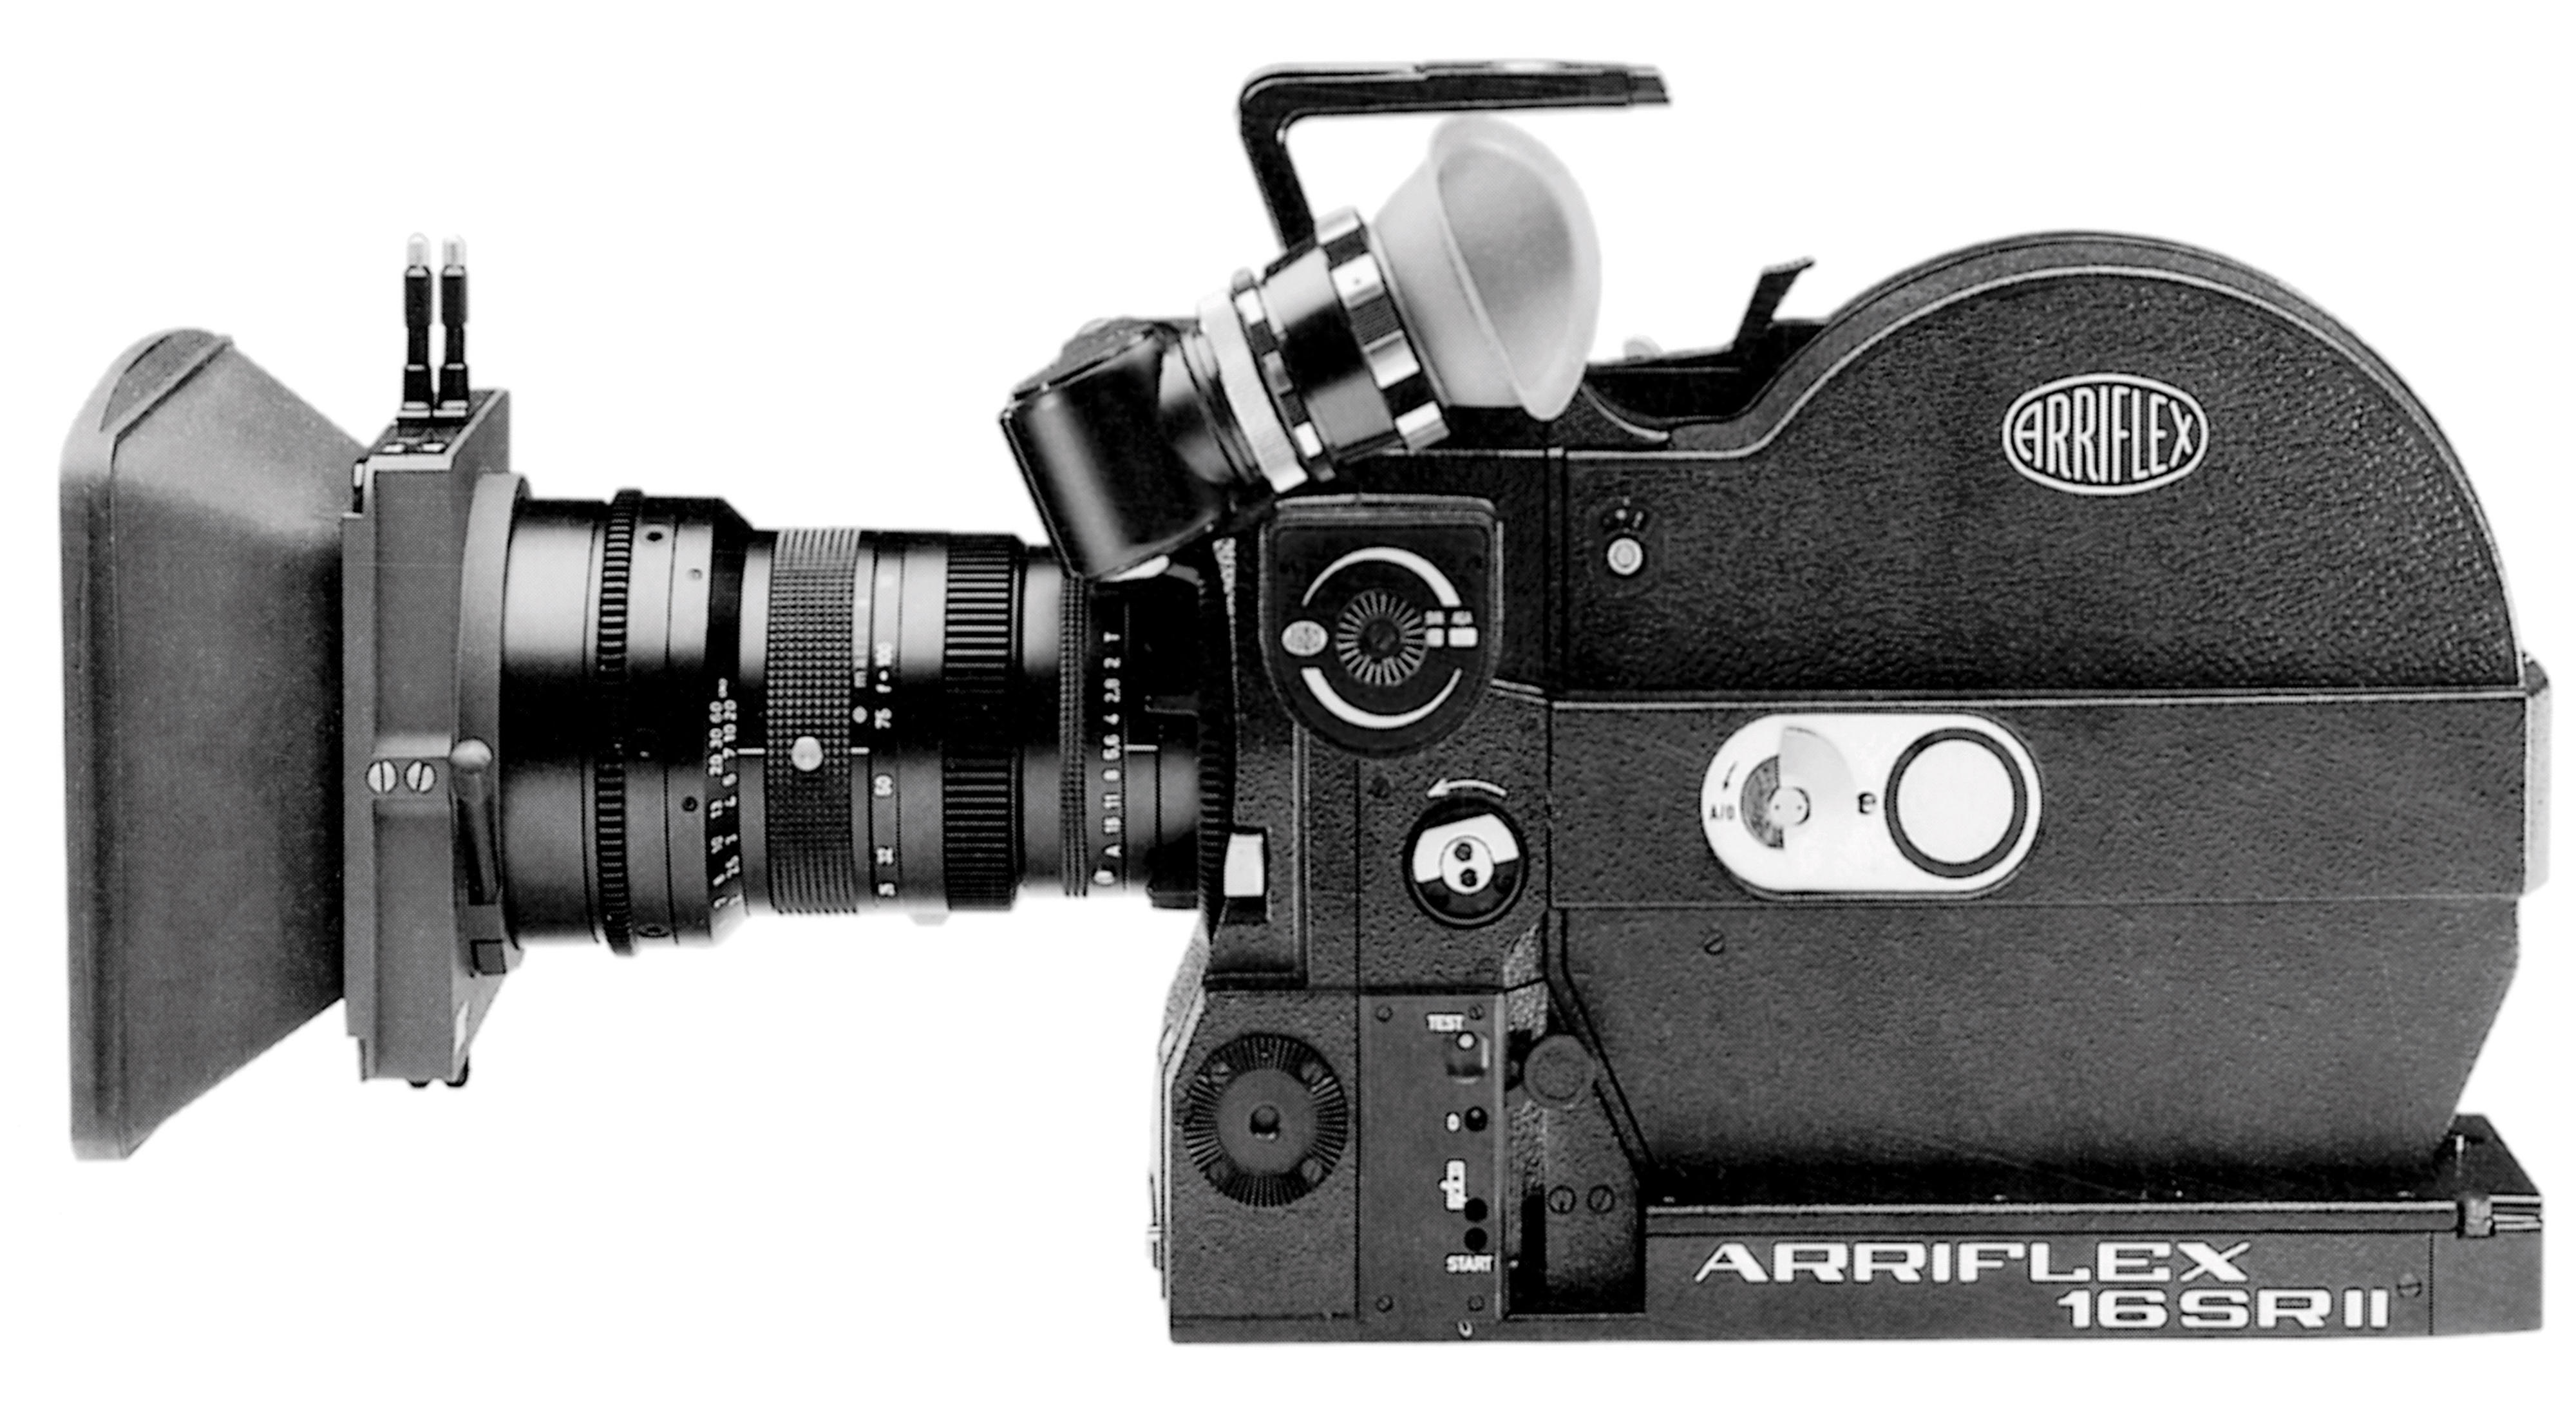 One of ARRI's best-selling cameras of all time, the ARRIFLEX 16 SR